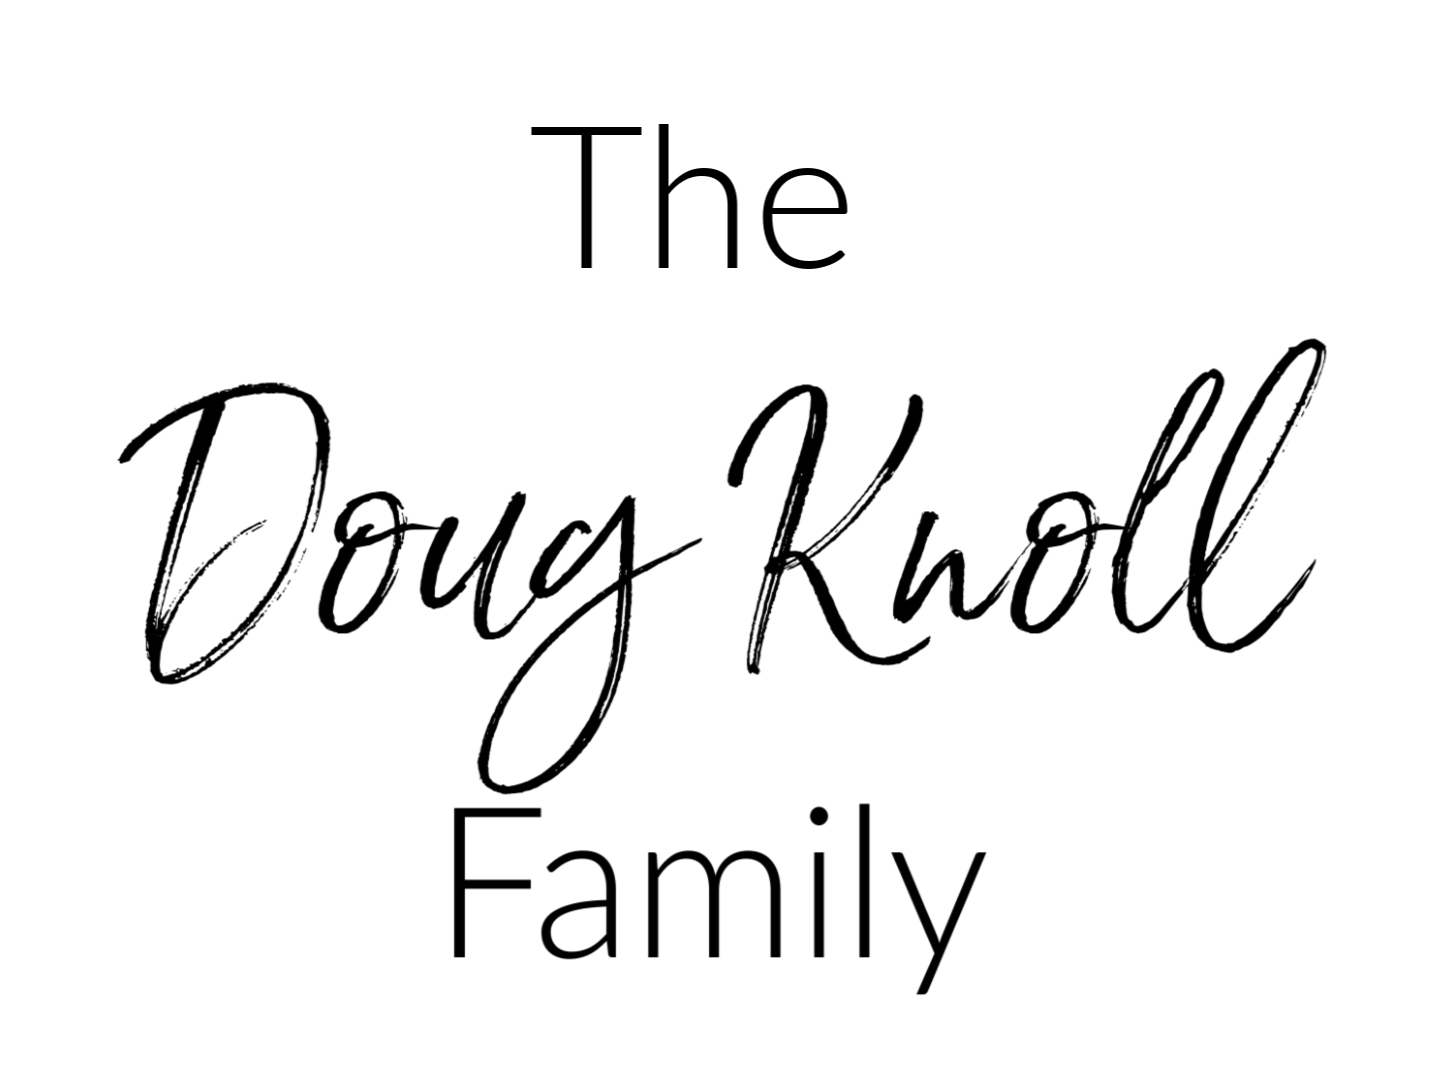 knoll family.png